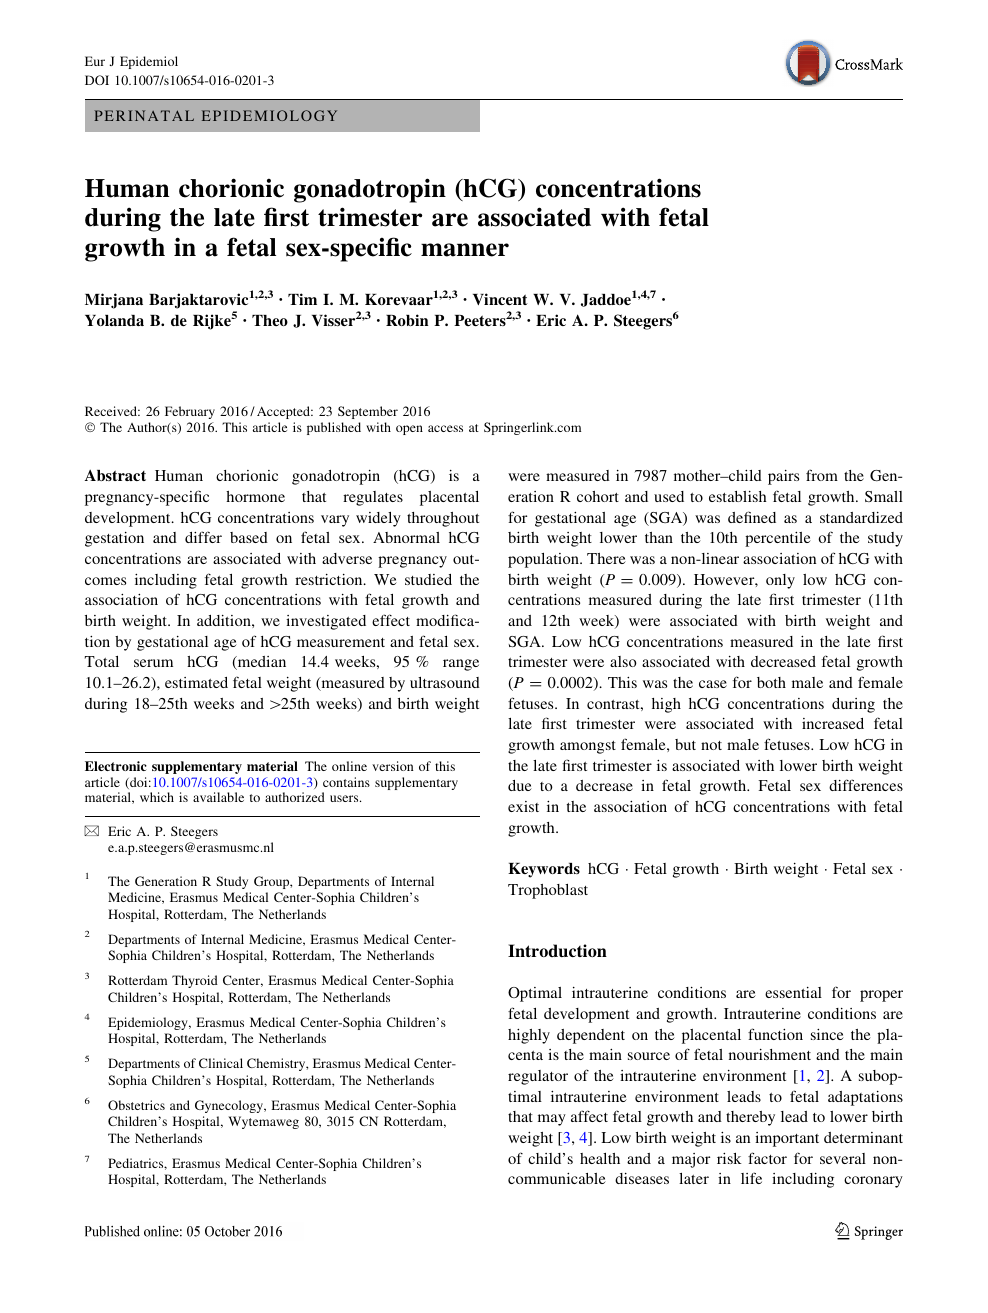 Human chorionic gonadotropin (hCG) concentrations during the late first  trimester are associated with fetal growth in a fetal sex-specific manner –  topic of research paper in Health sciences. Download scholarly article PDF